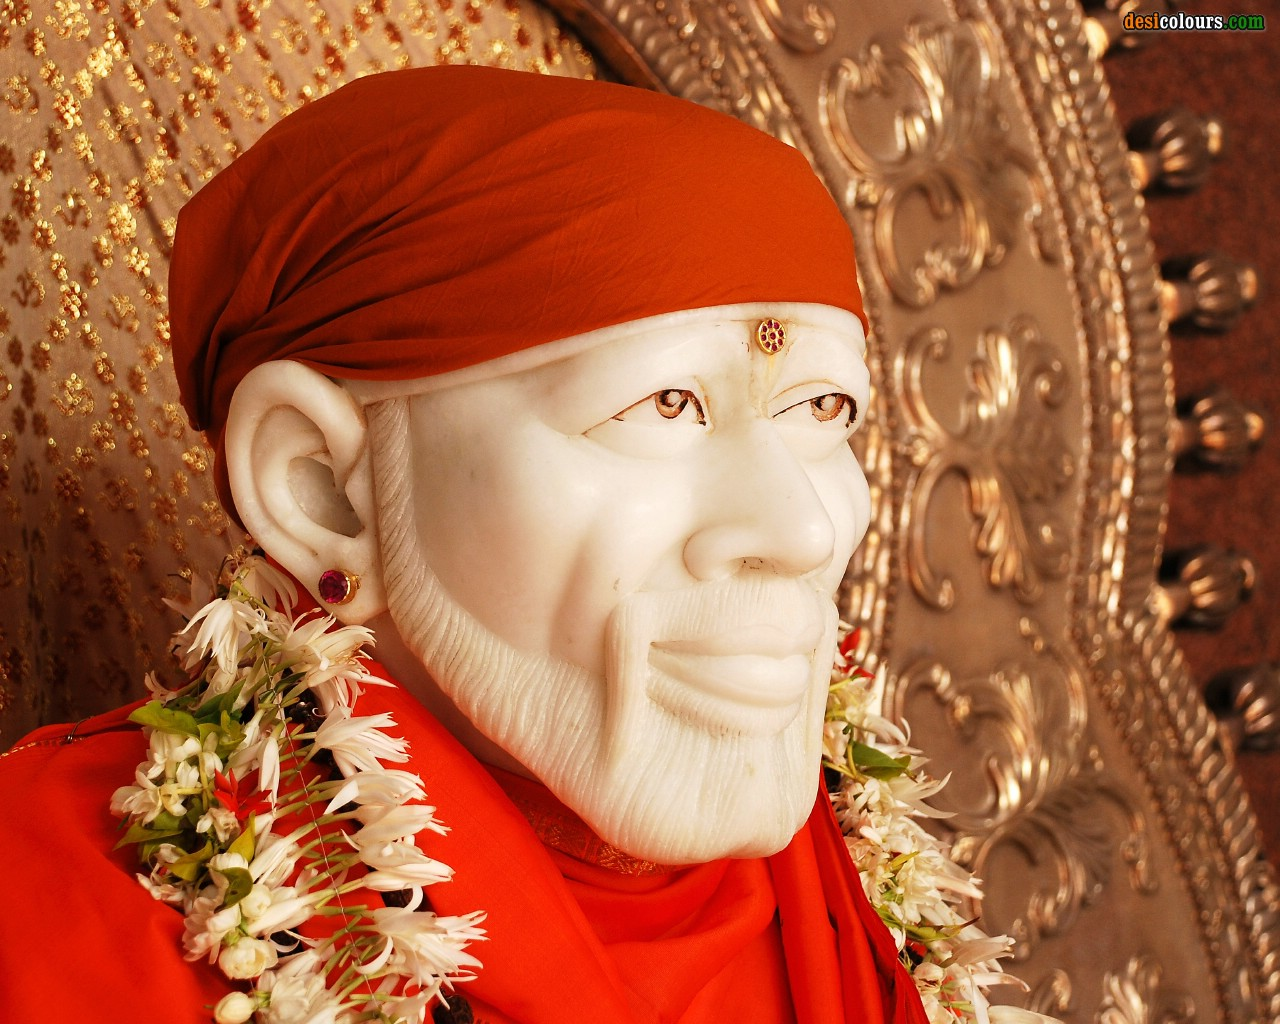 sumeeth vanga lord shirdi sai baba photos wallpapers